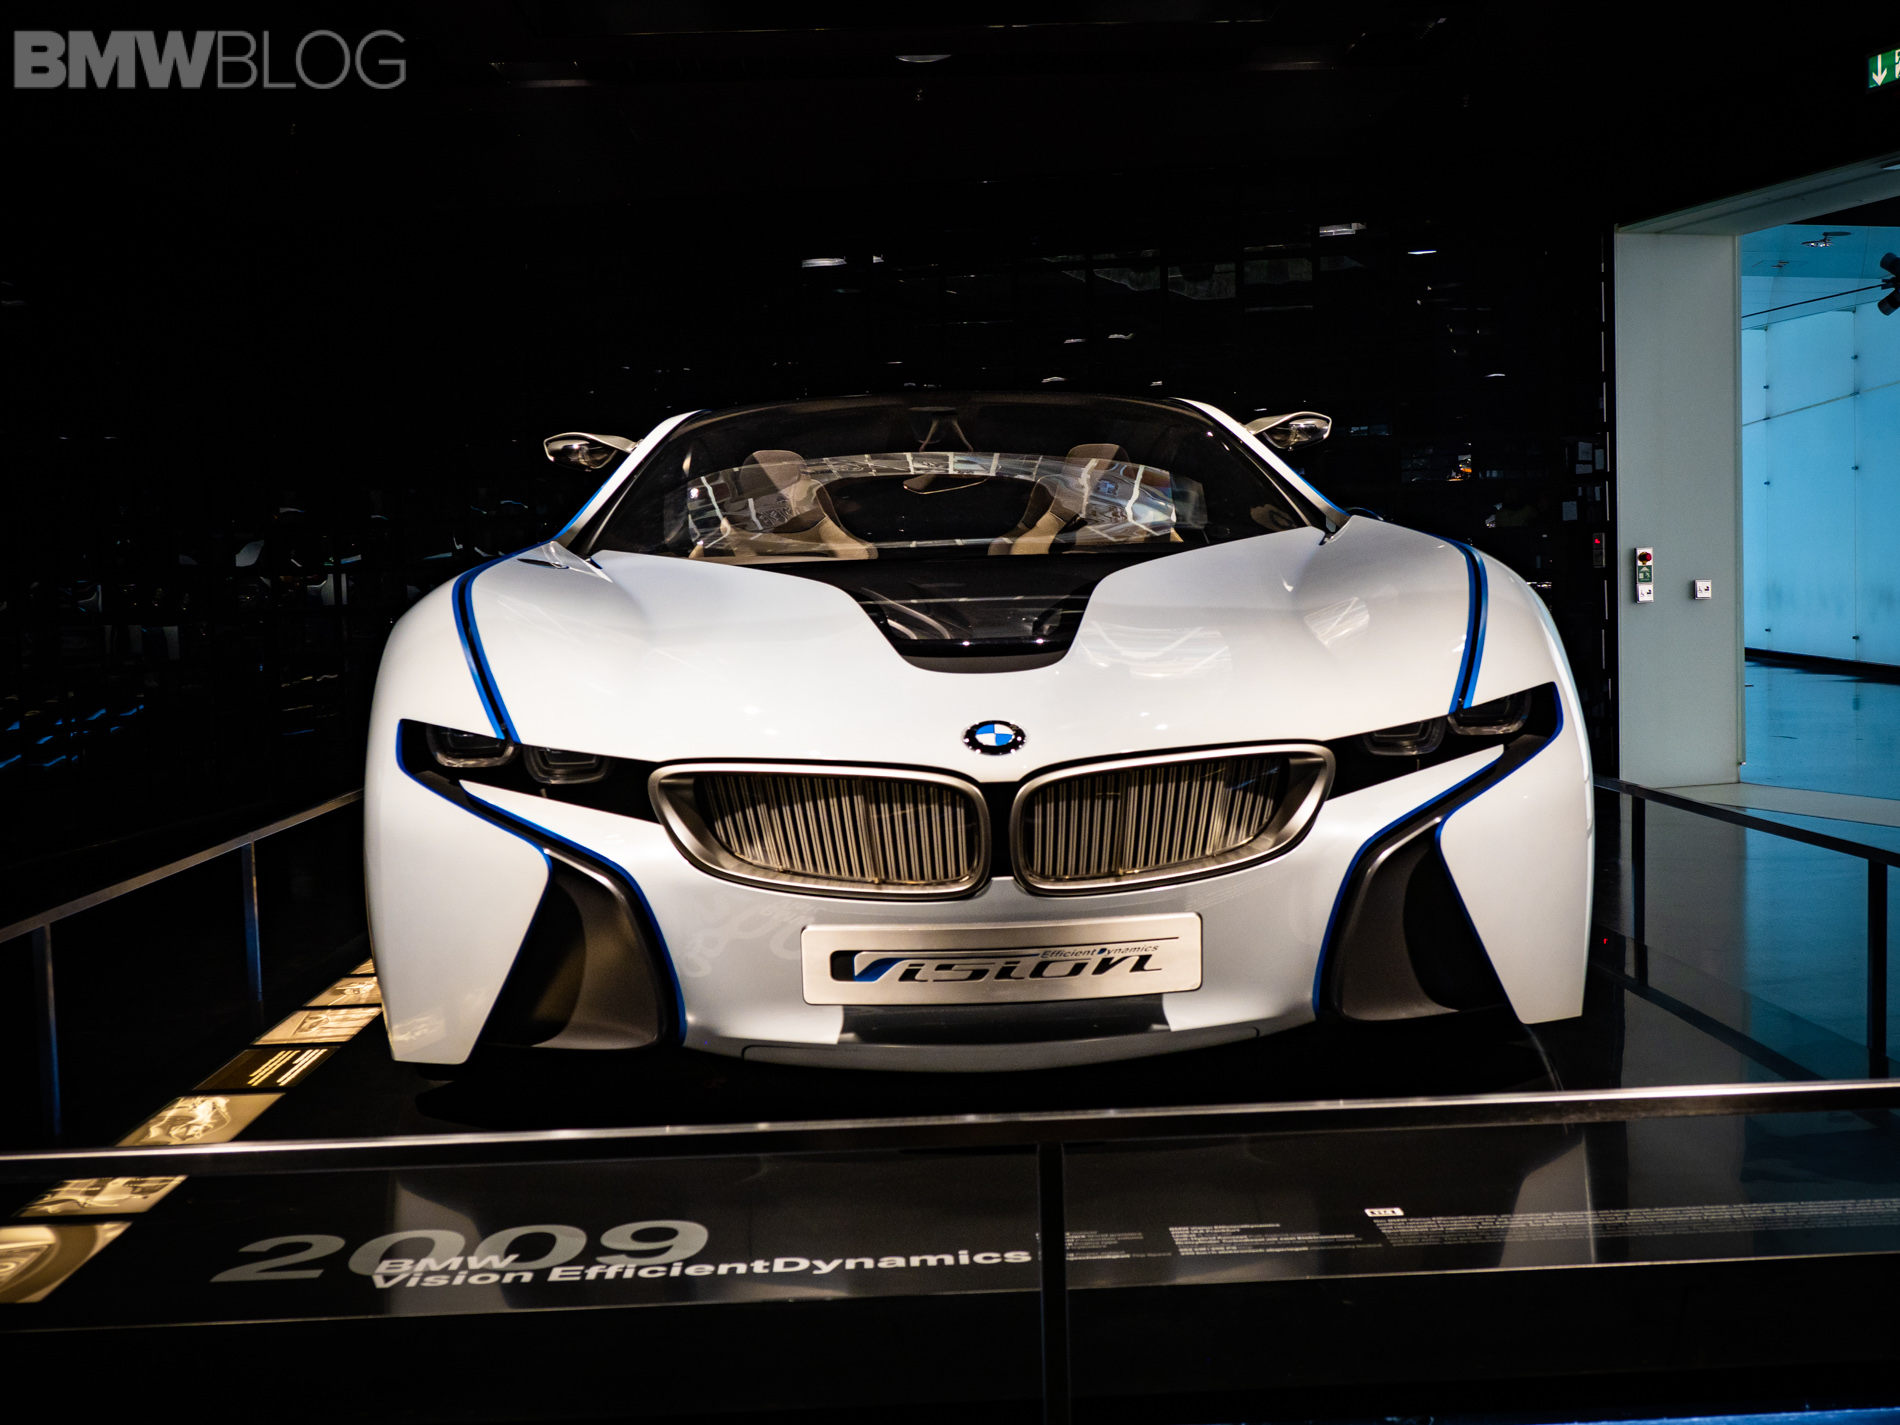 BMW i Vision Efficient Dynamics 2